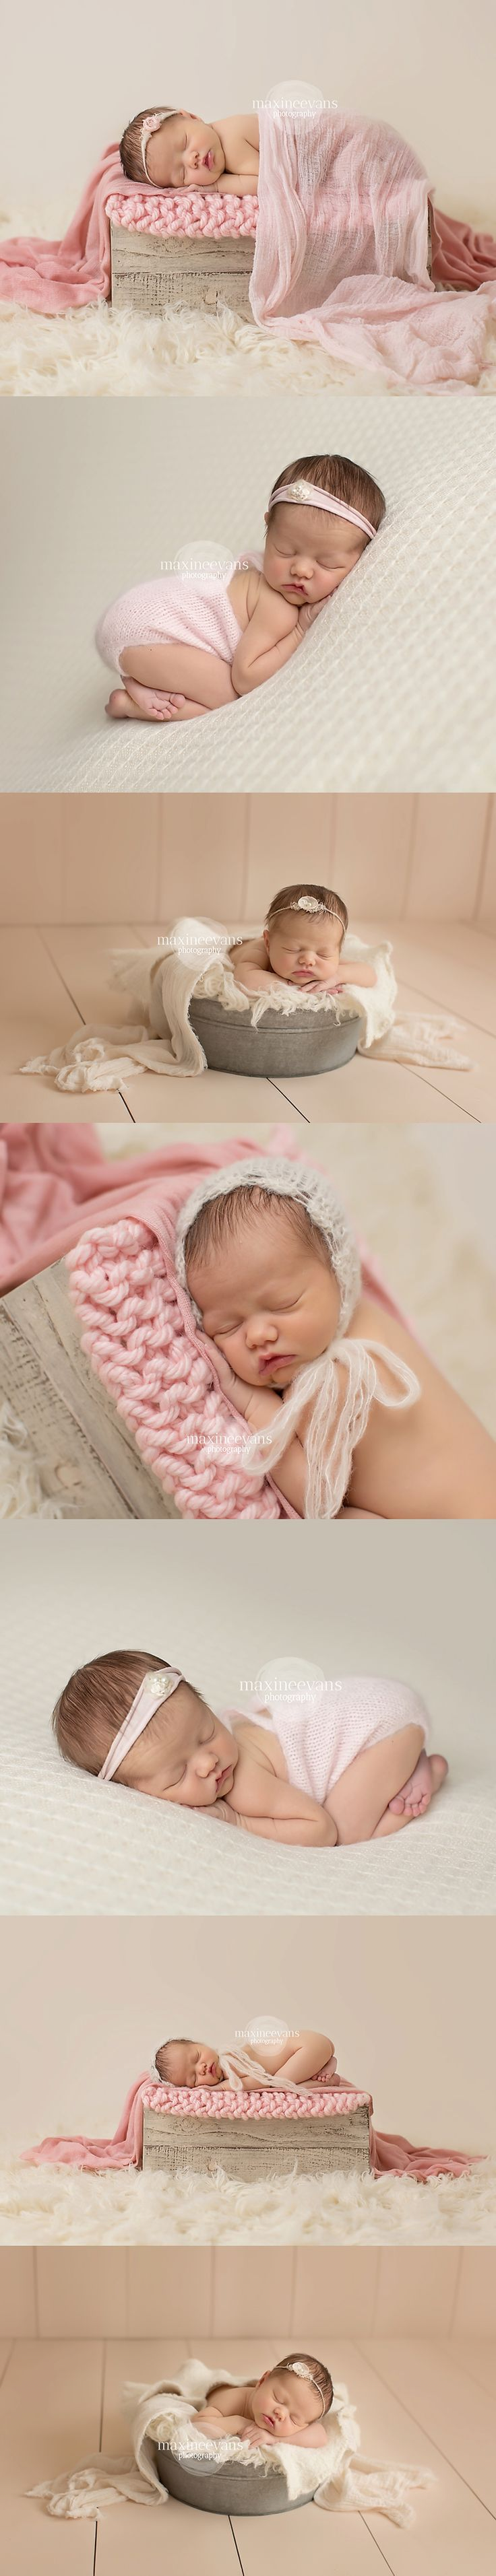 New Ideas For New Born Baby Photography Gorgeous Newborn Baby Girl Los Angeles Newborn Photographer Photography Magazine Leading Photography Magazine Bring You The Best Photography From Around The World